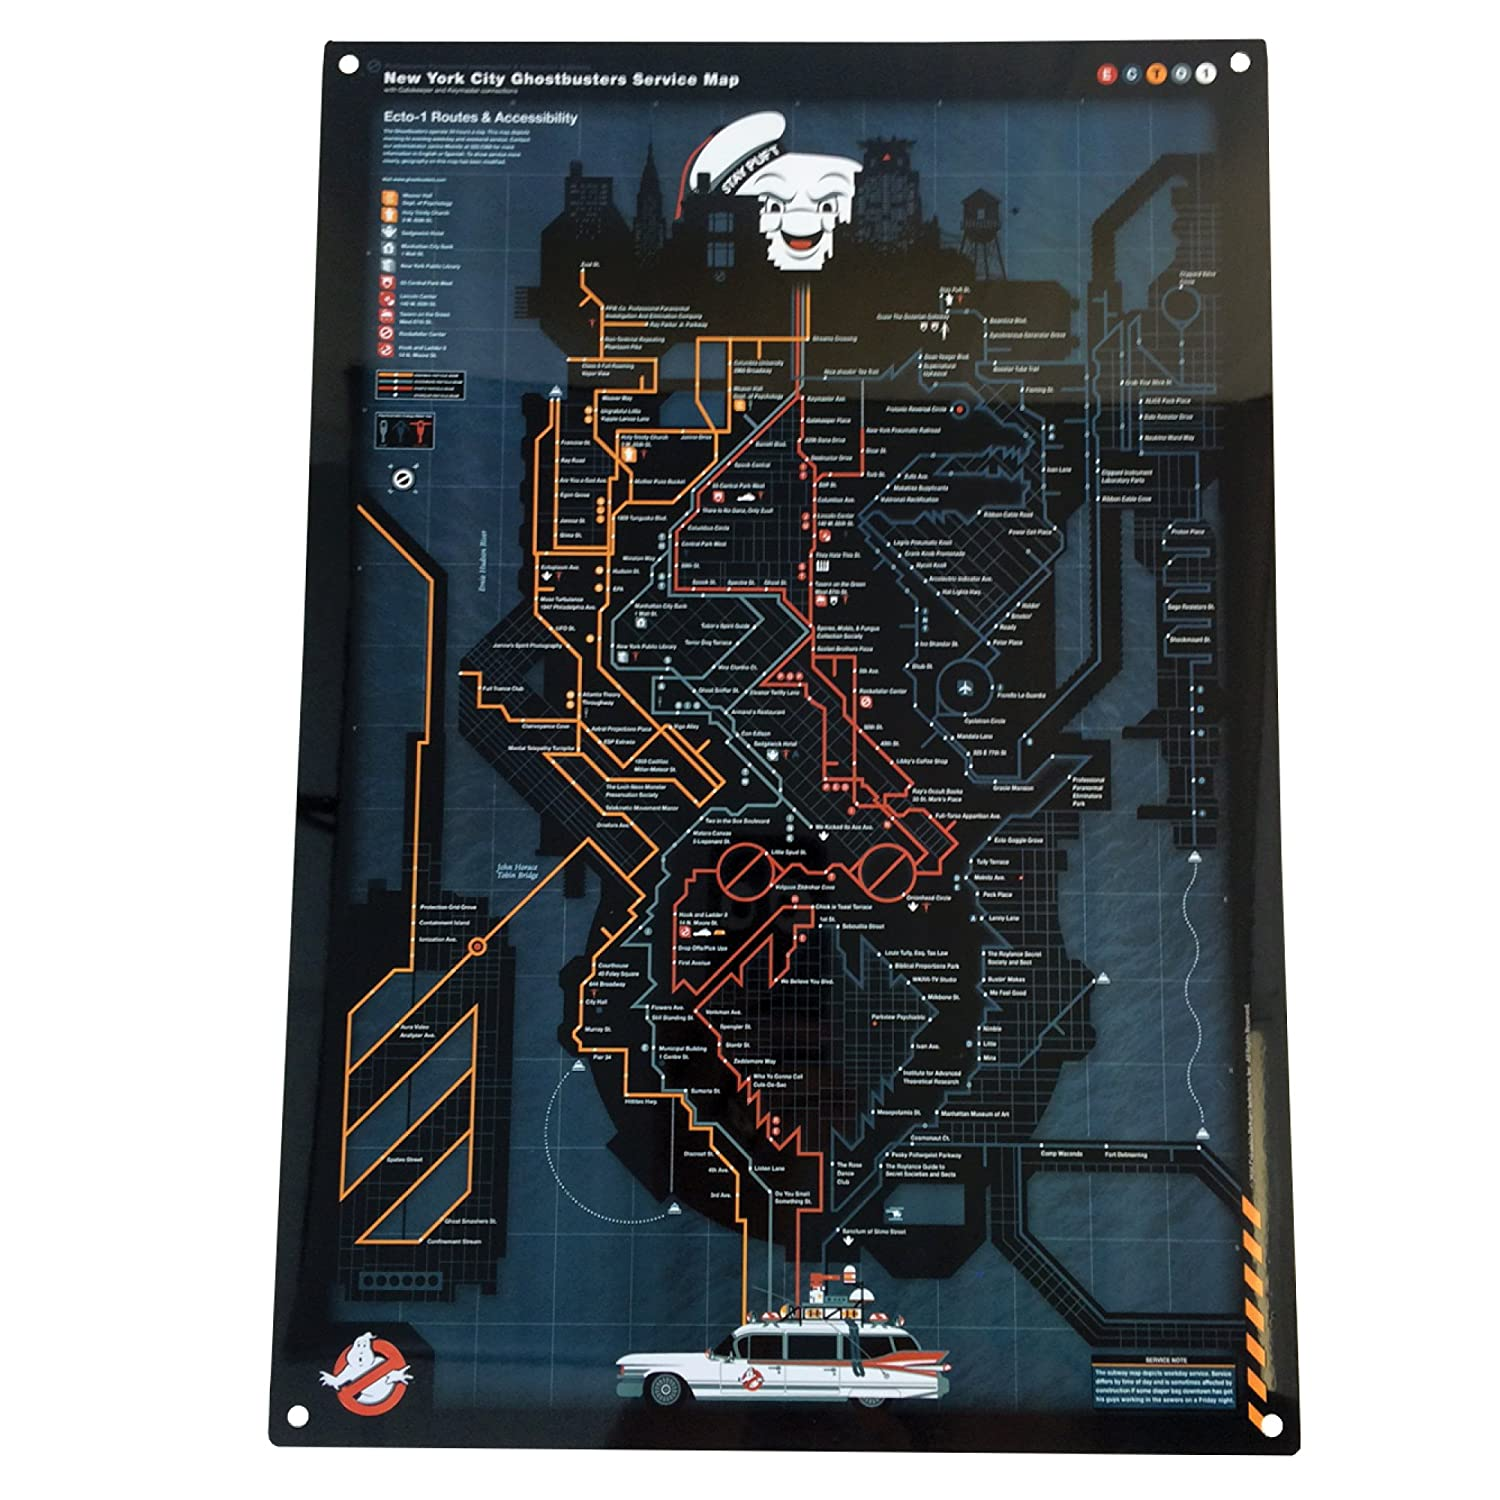 激安通販新作 Factory NYC Entertainment Ghostbusters Sign NYC B01EICXORQ Subway Map Metal Sign B01EICXORQ, 工芸おかや:23354bd8 --- village-aste.fr